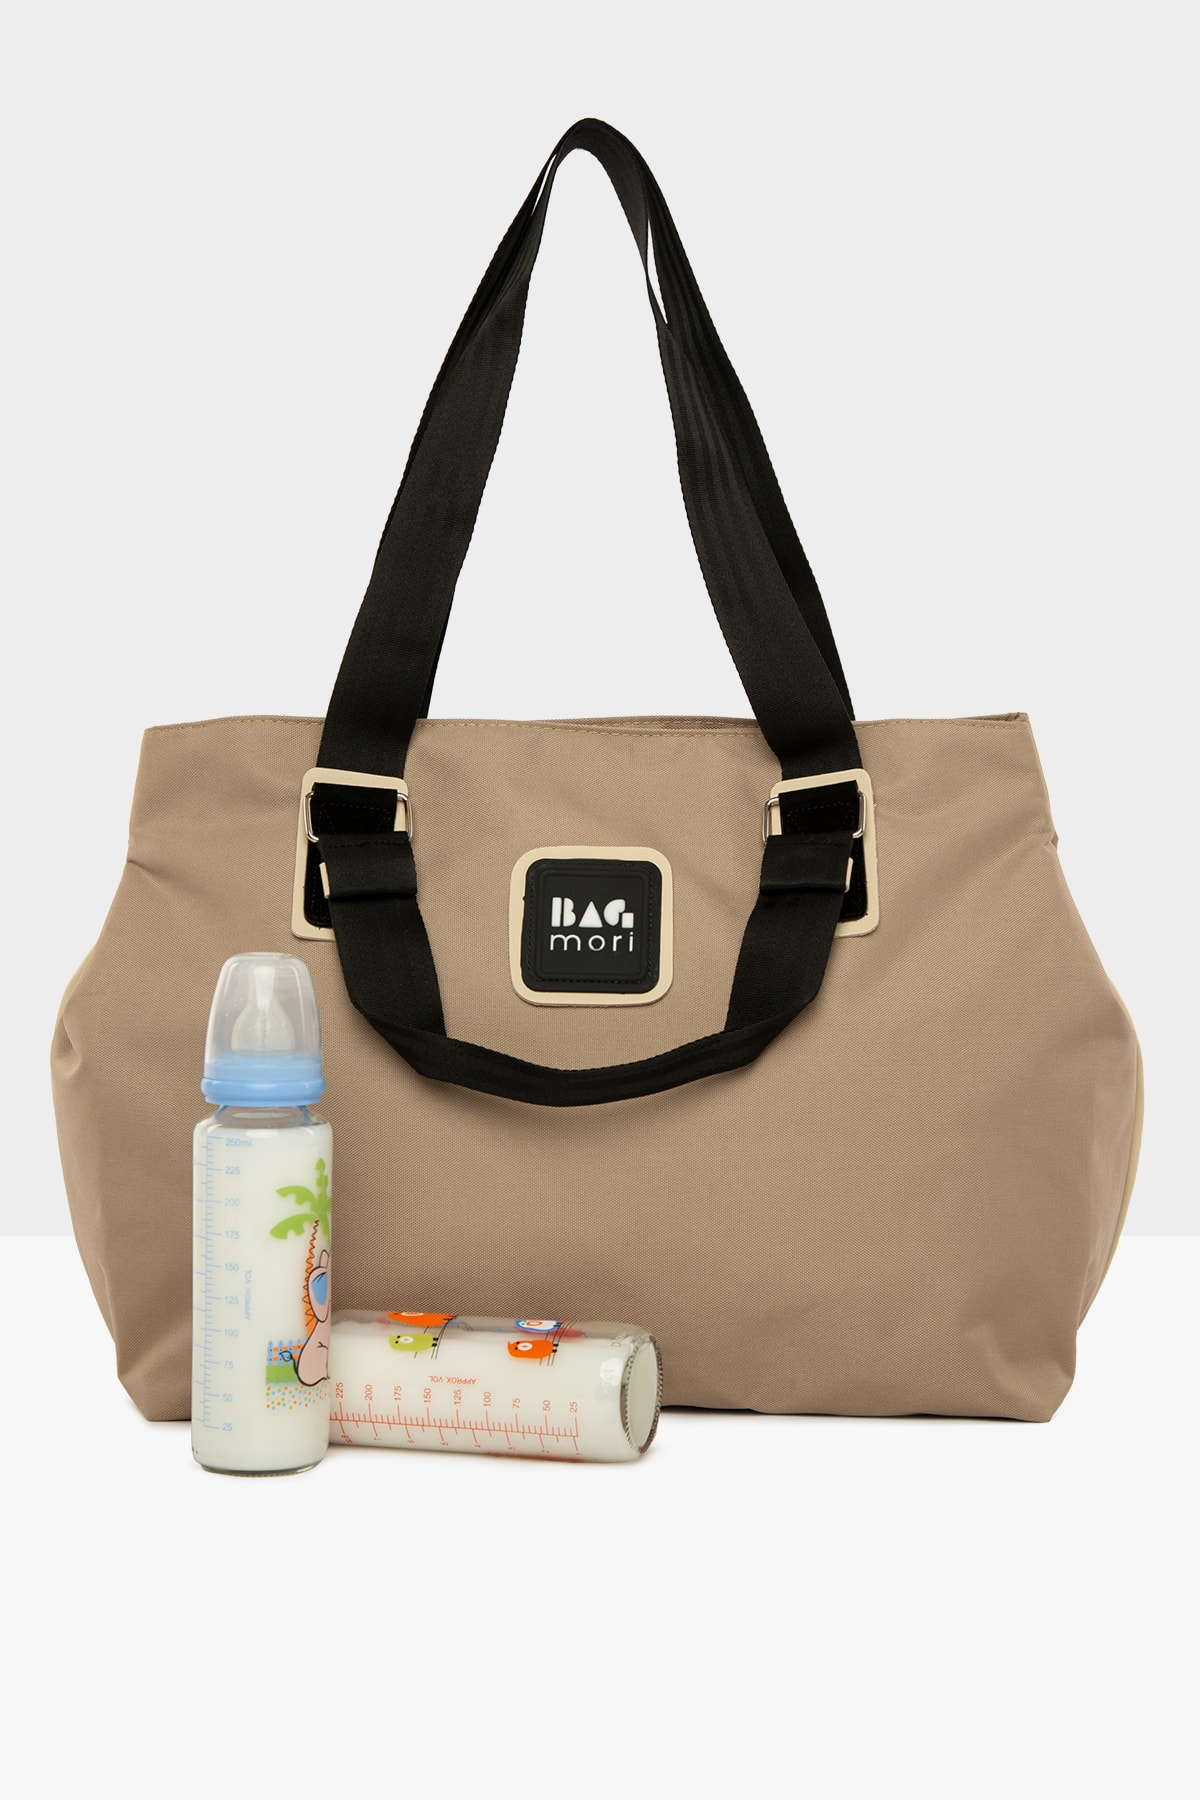 Mink Women's Garnished Mother Baby Care Bag with Snap Fastener for mom lunch bag for kids breast pum